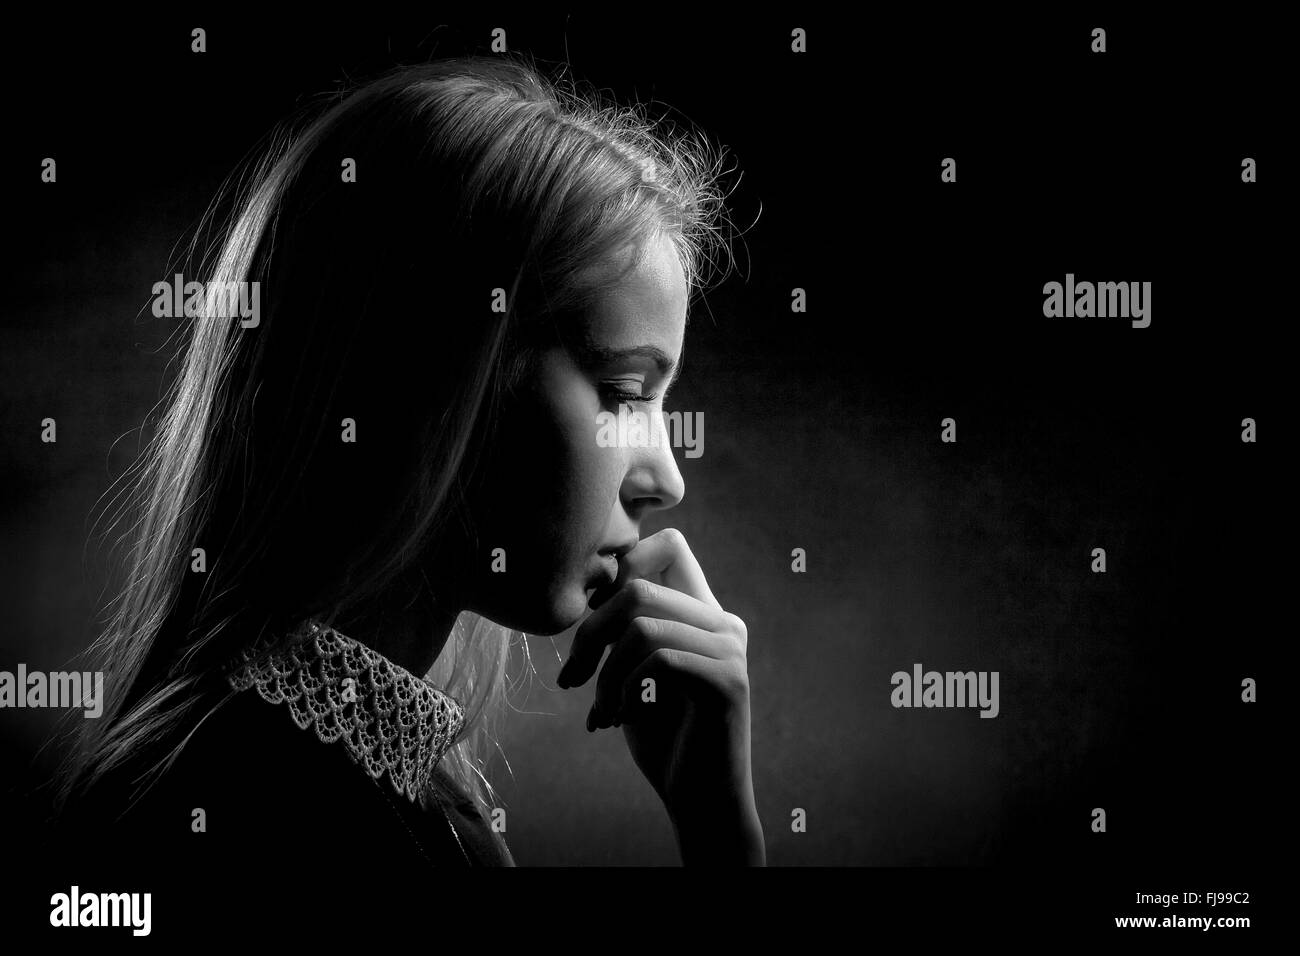 Young Girl Crying Black And White Stock Photos  Images -6319